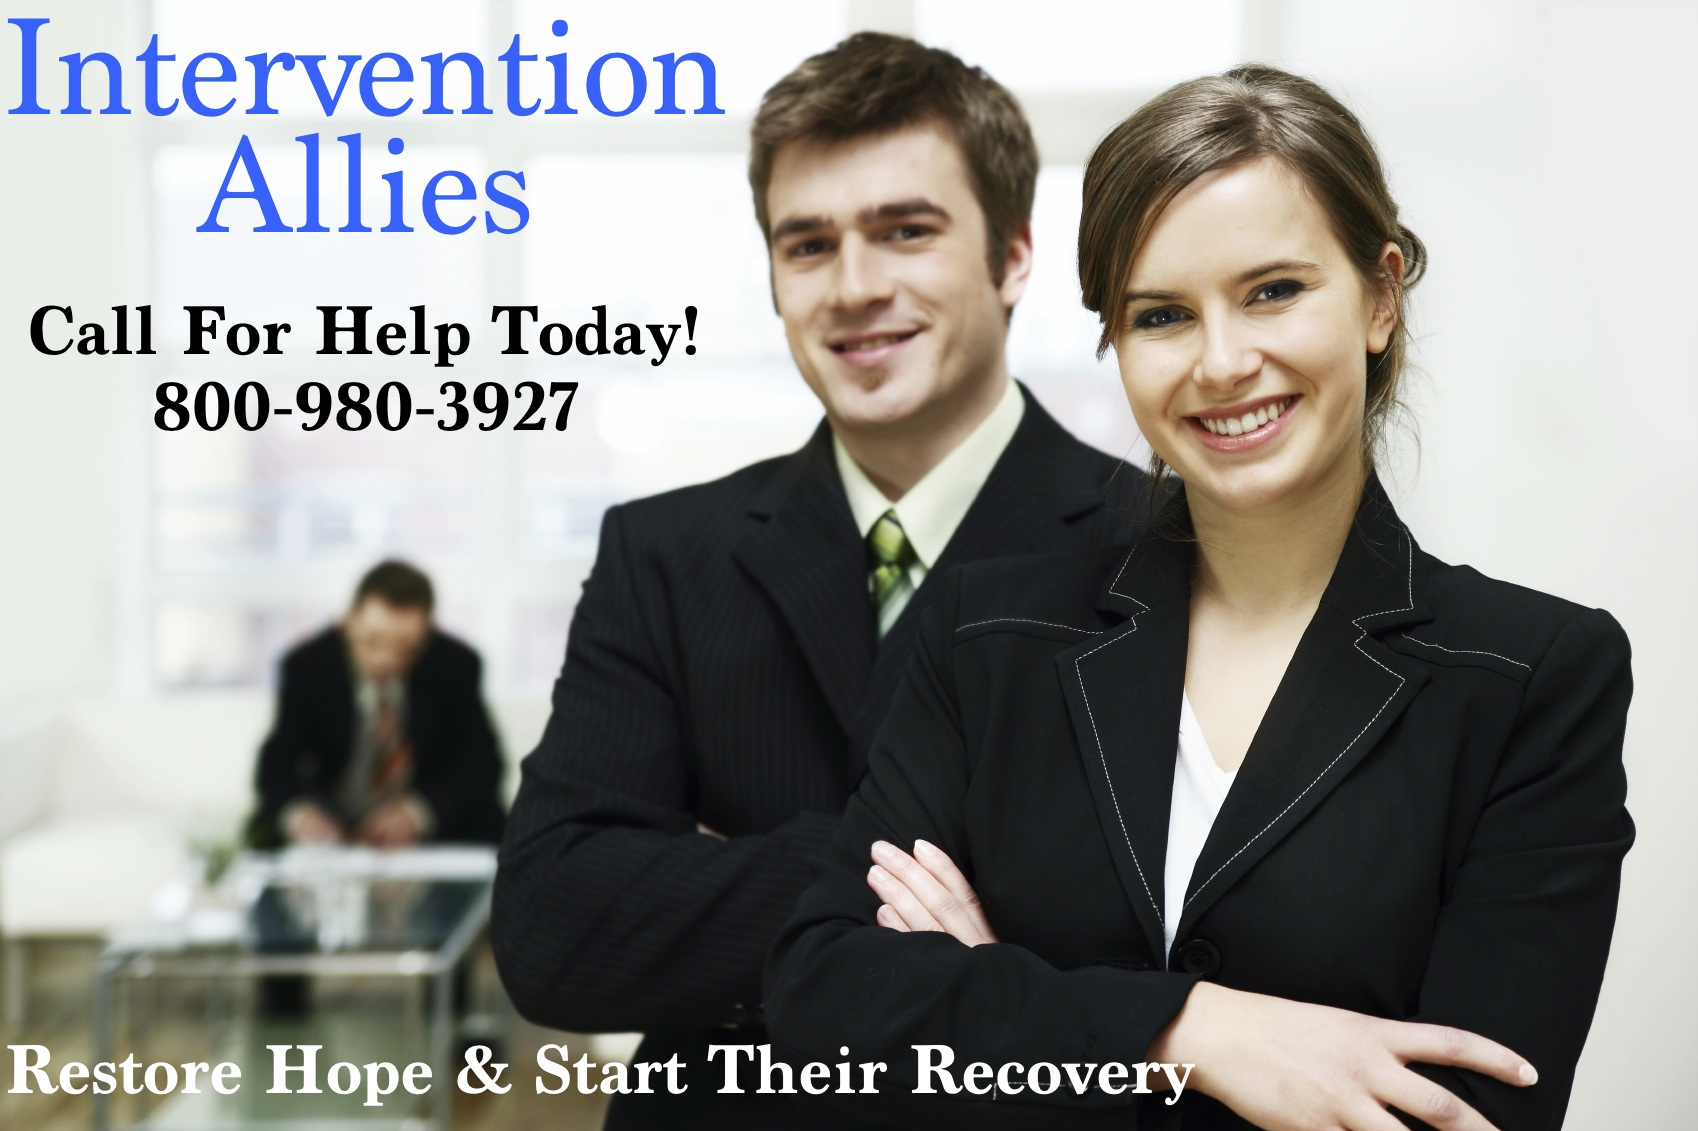 Alcohol Intervention Drug Addiction Intervention Meantal Health Inervention Help